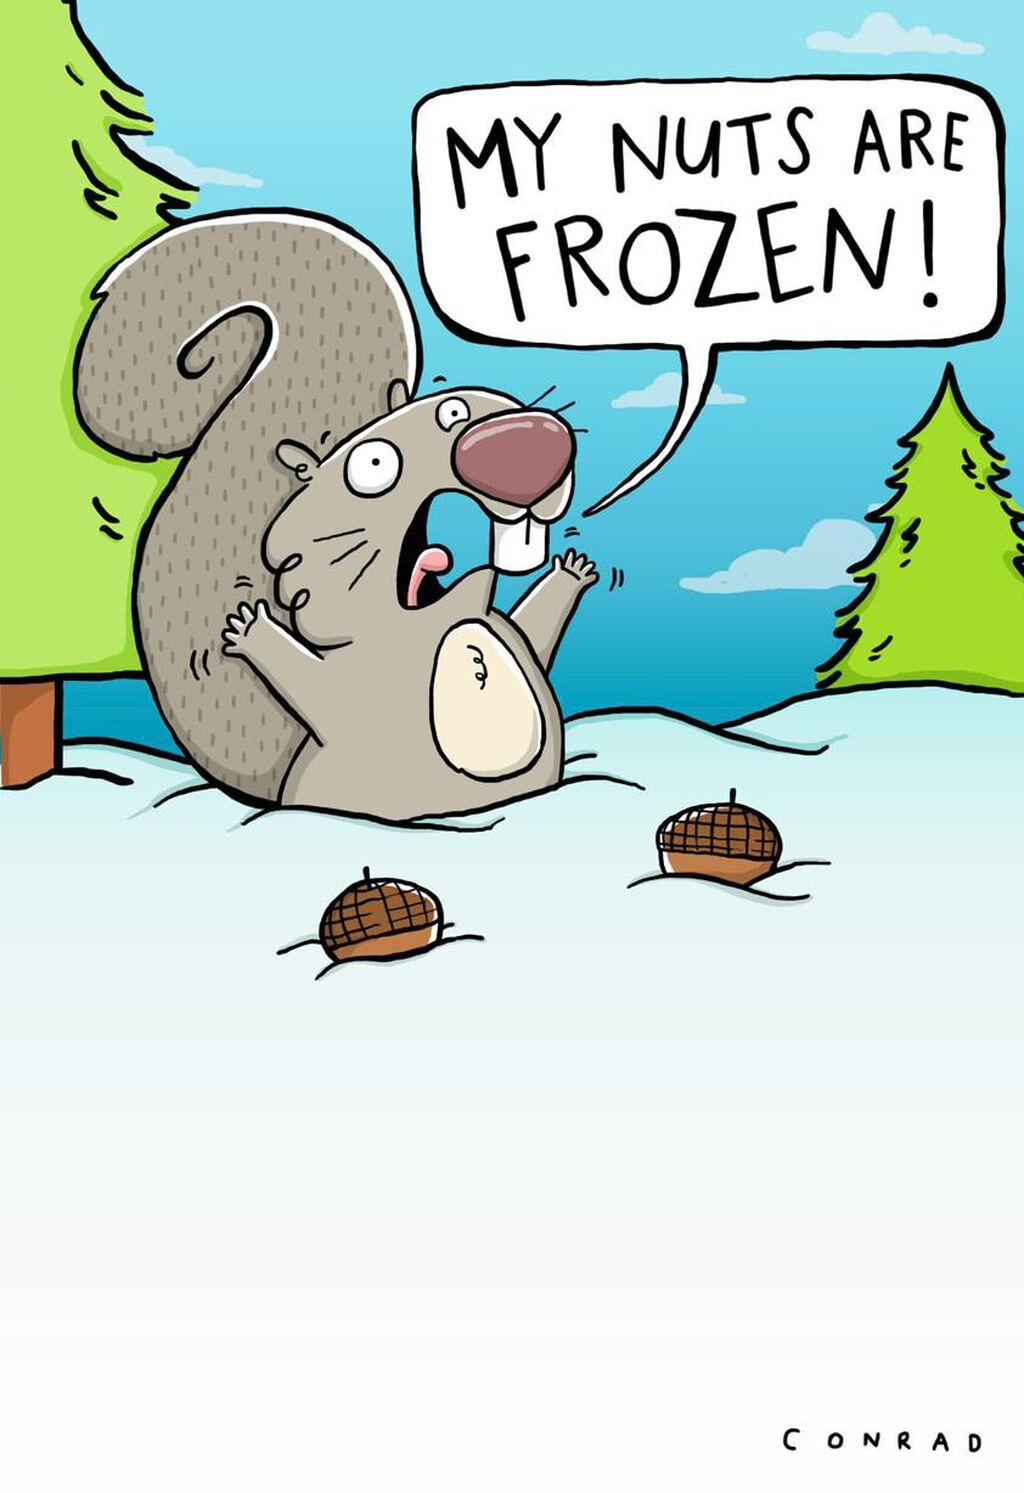 Frozen Nuts Funny Christmas Card Greeting Cards Hallmark